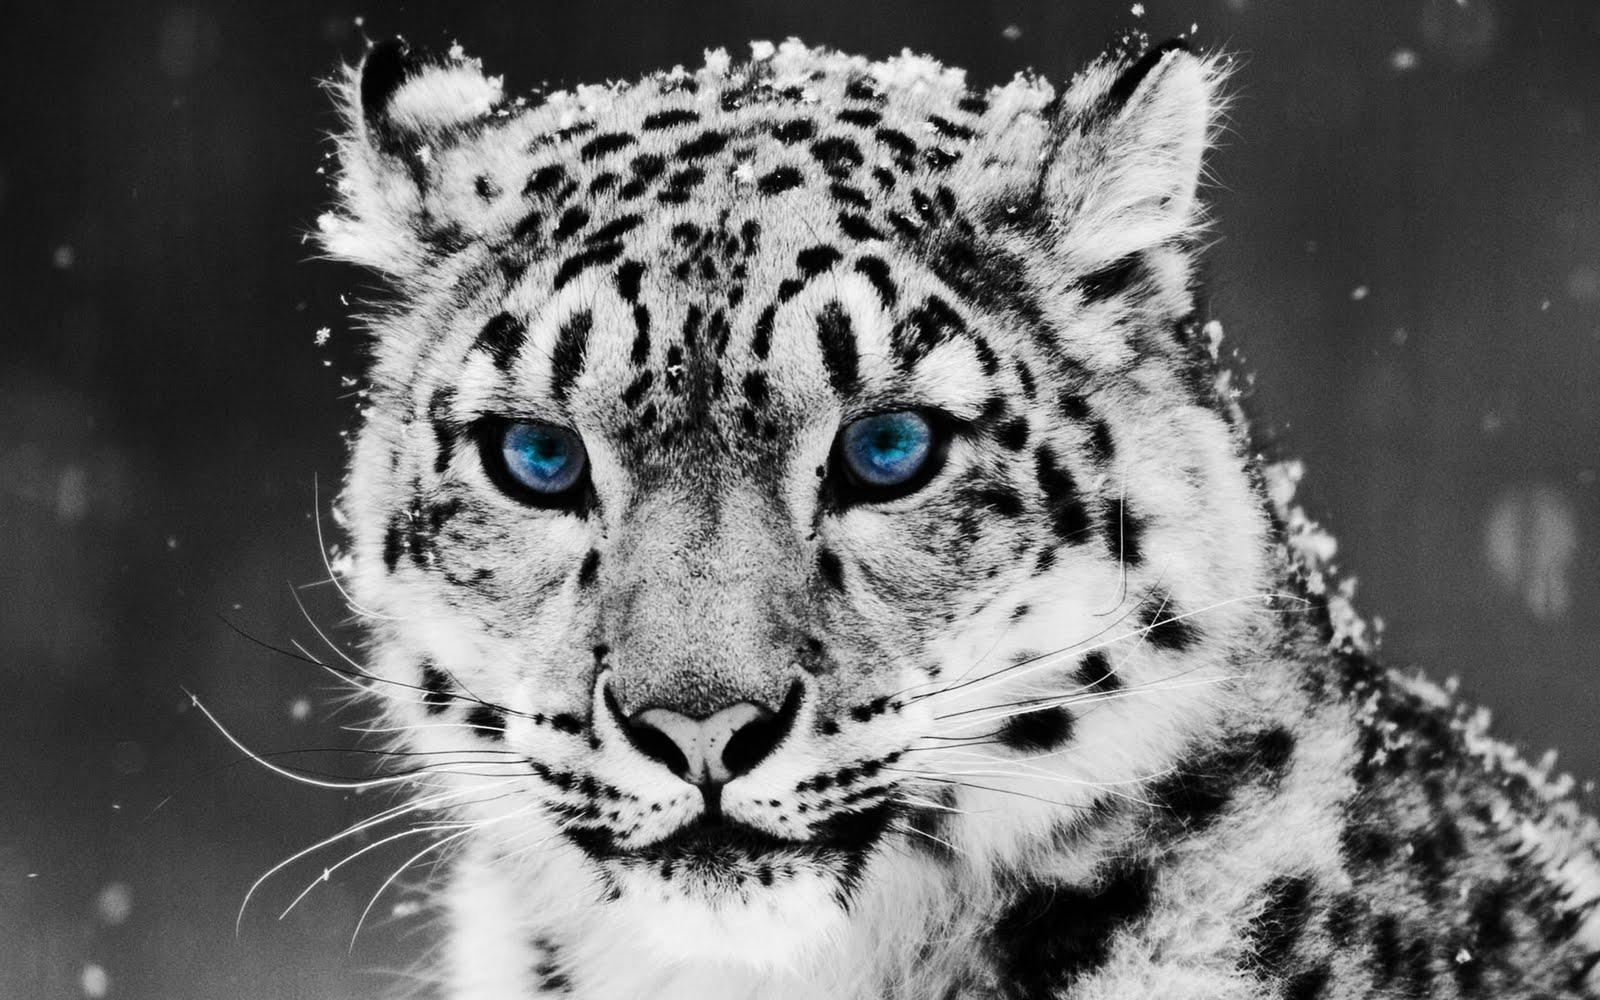 Lord Shiva Black Hd Wallpapers Download Baby Snow Leopard Wallpaper Gallery